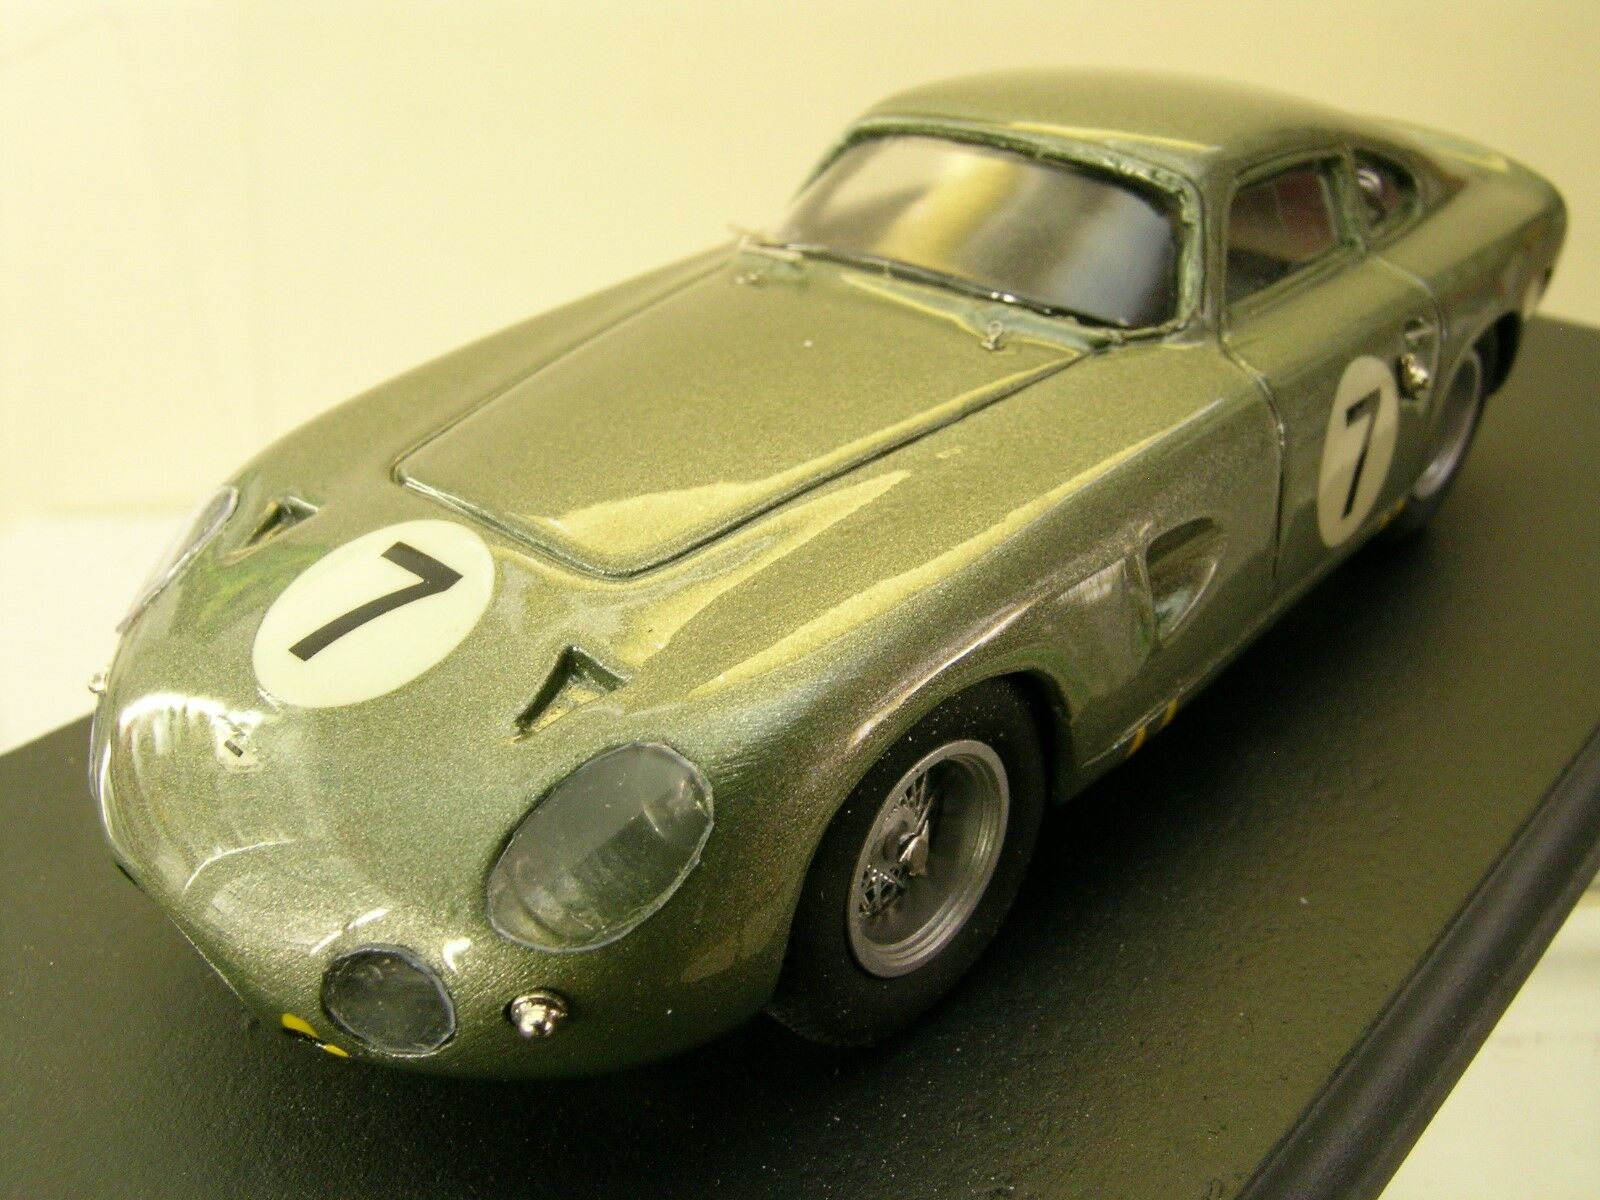 SMTS-MODELS RL44 ASTON MARTIN PROJECT 214 1963 7 GREEN + BOX SCALE 1 43